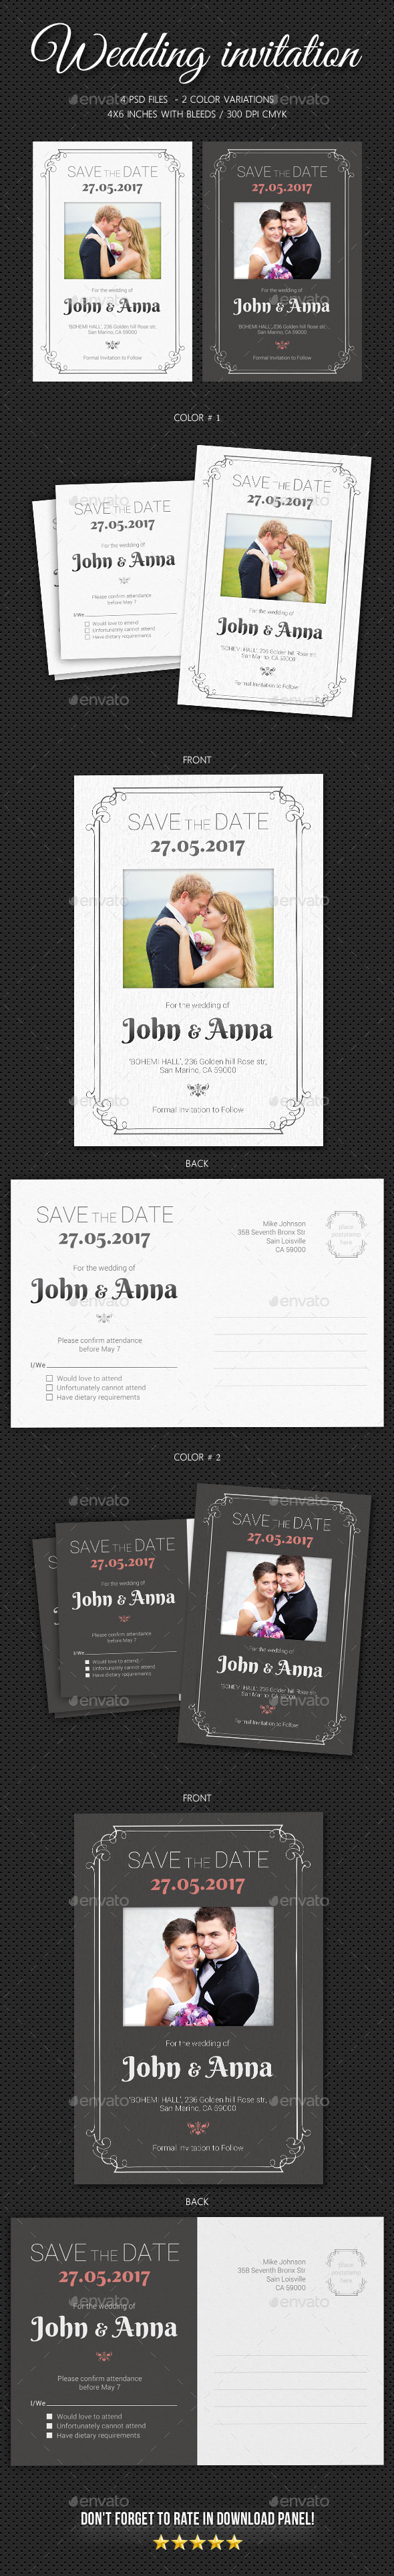 Wedding Invitation V5 - Weddings Cards & Invites